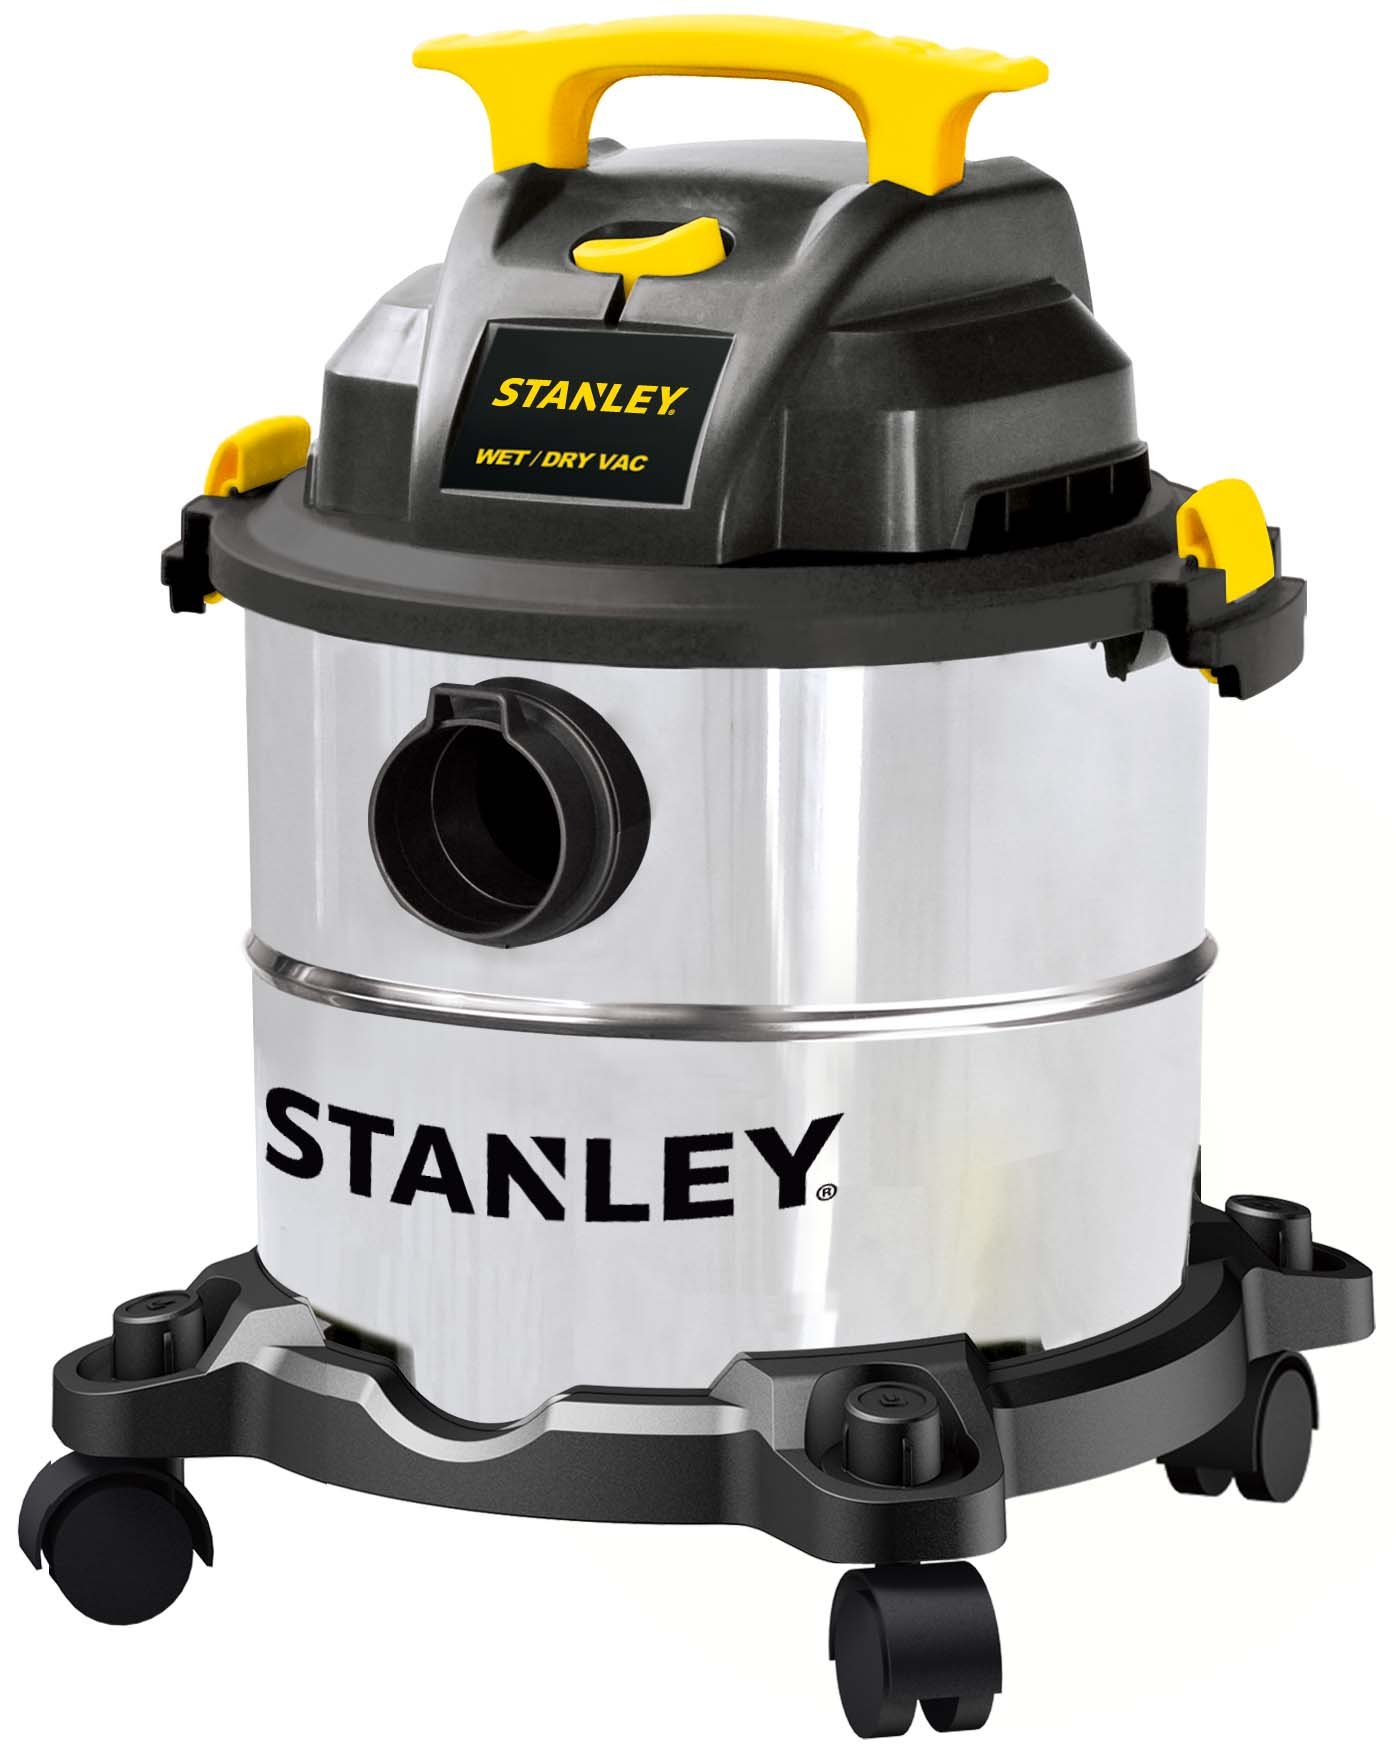 Stanley SL18115 Wet/Dry Wet Dry Vacuum Steel Tank, 5 gallon/4.0 HP/50'' by STANLEY